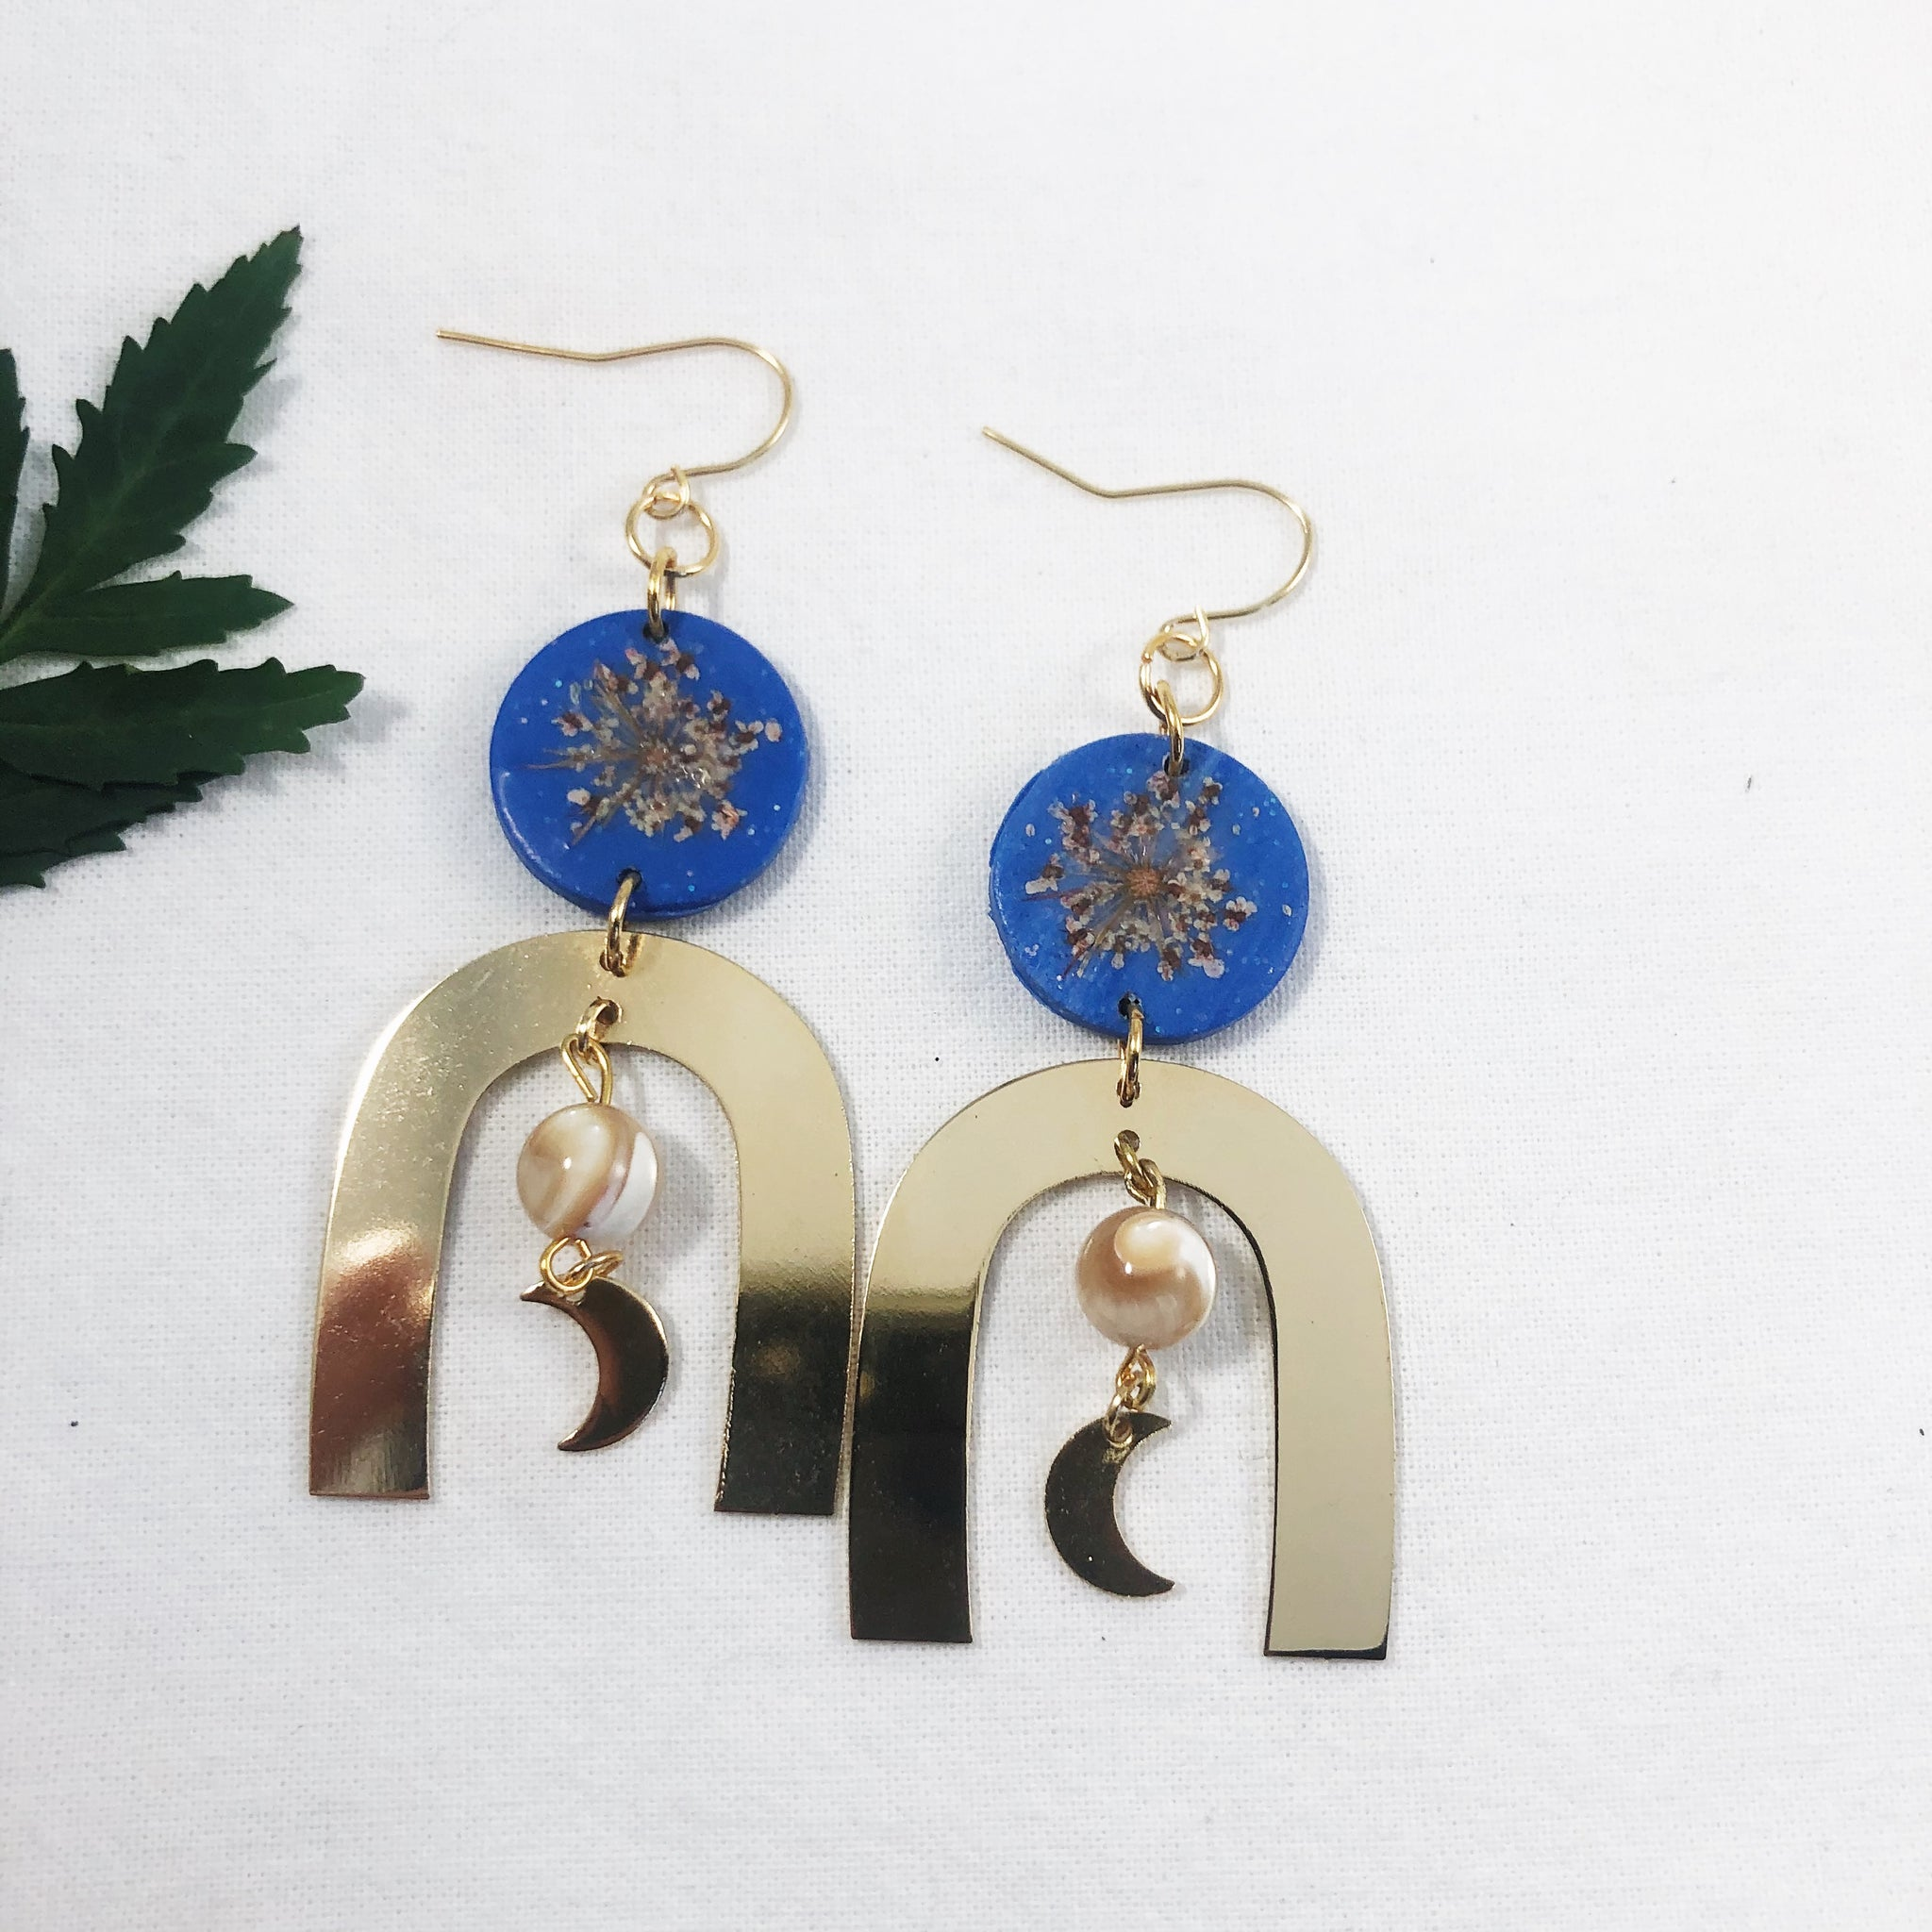 Marble Earrings with Silver Crescent Moon Dangle Polymer Clay Minimalistic Hoops